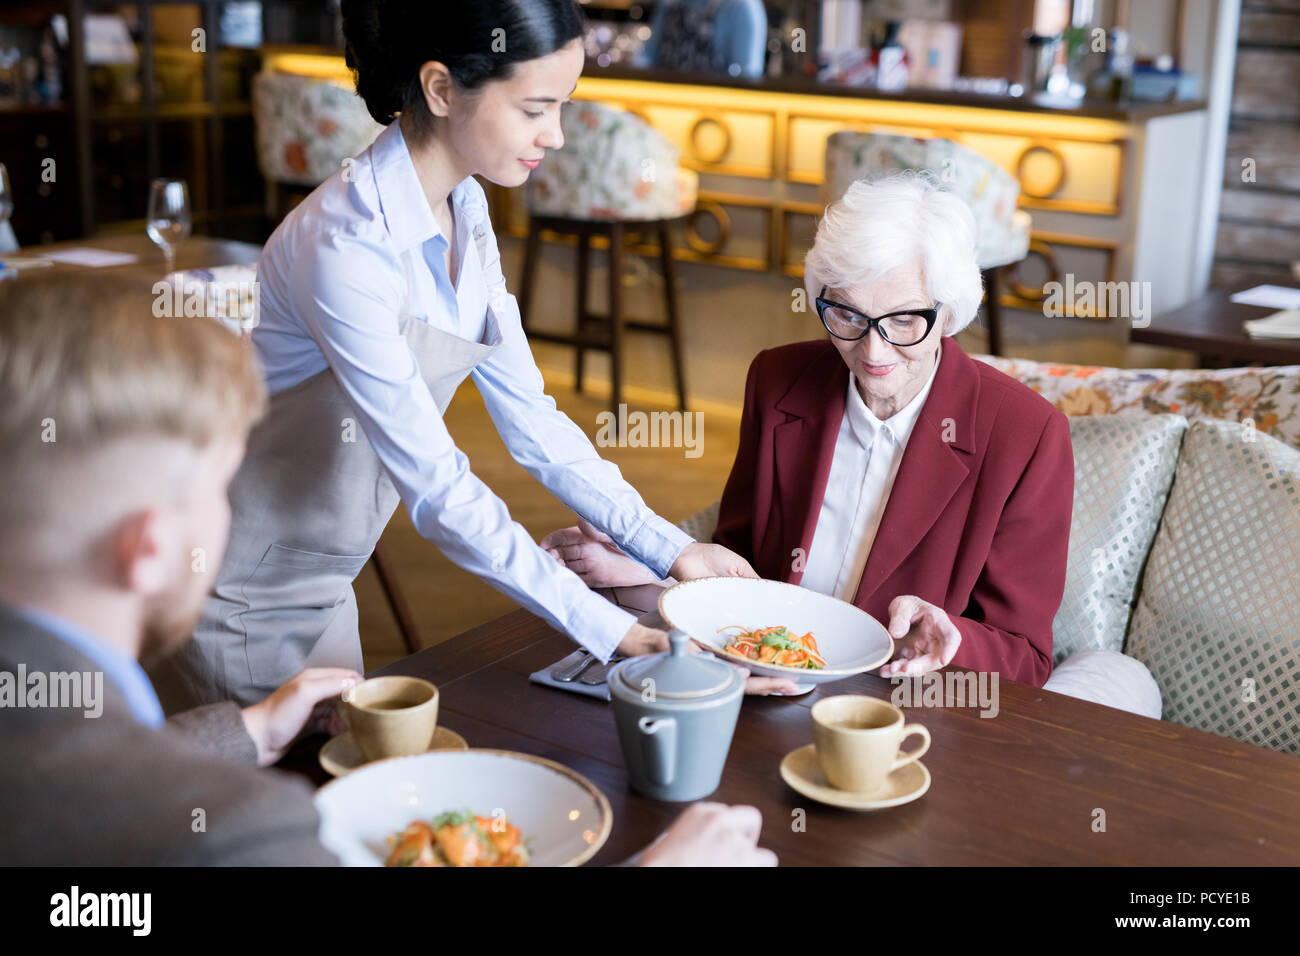 Having lunch at cafe - Stock Image